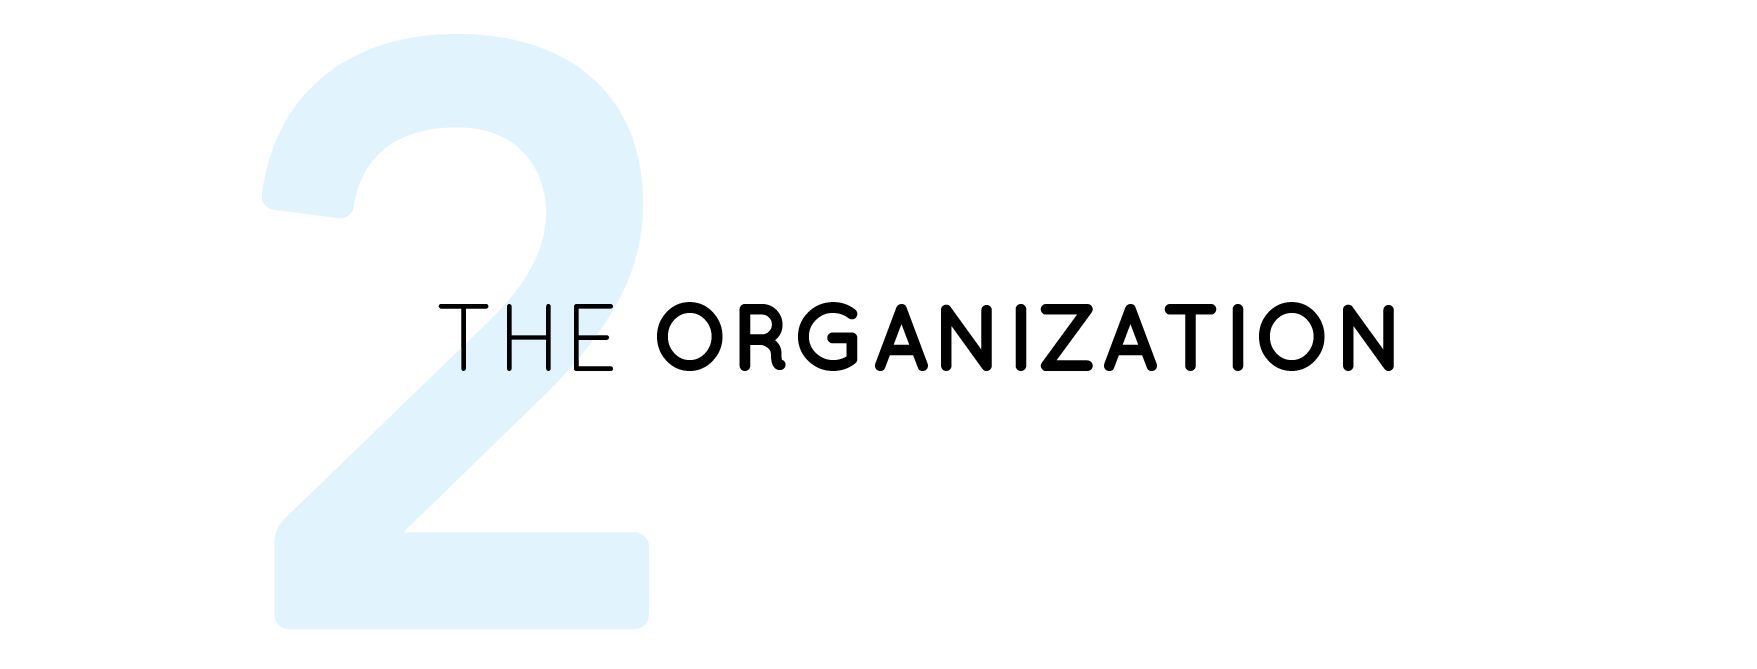 4 hour session - We work together to first declutter and then design systems that fit your personal lifestyle. Items are donated to charity, waste is recycled, and excess is unburdened. A sense of relief is noticeable as you find that you and your environment are able to breathe again. Efficiency and peace are restored.